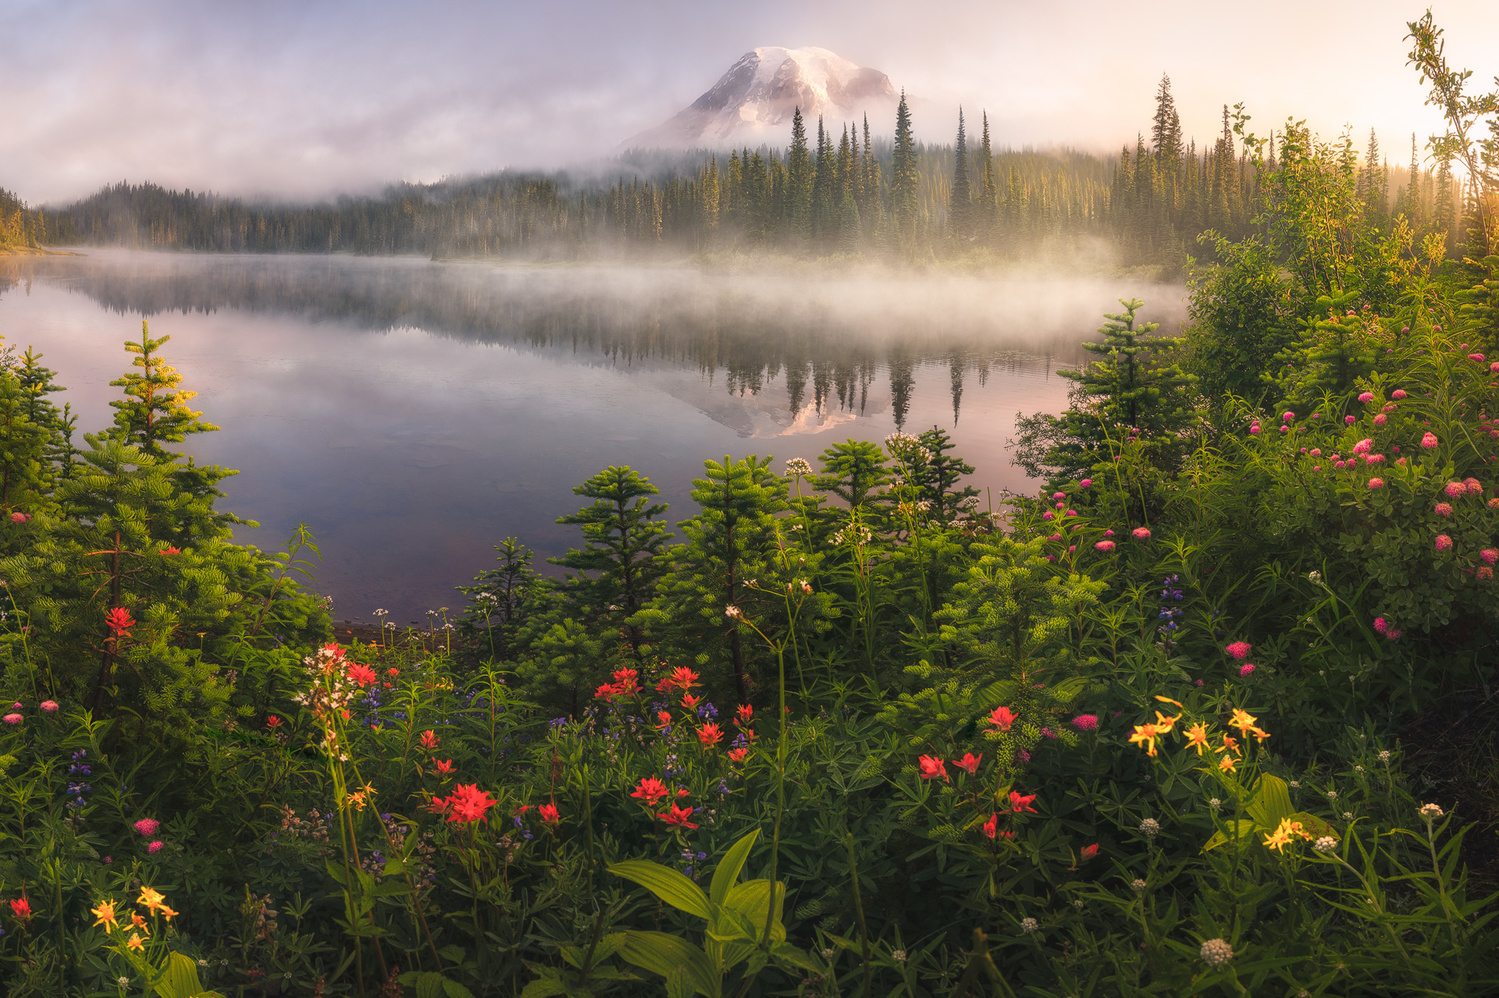 Misty Mornings by Eric Thiessen